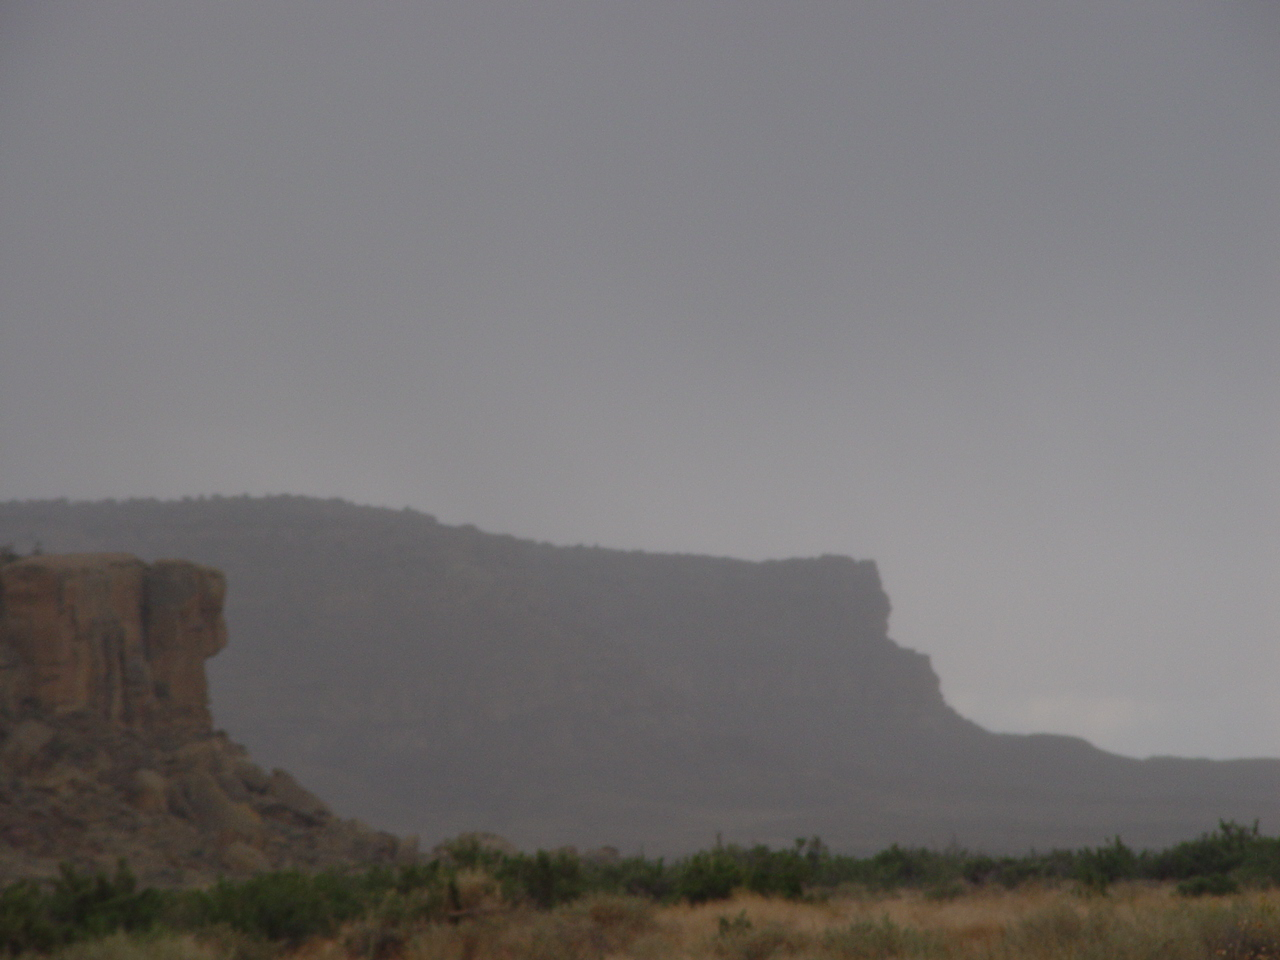 A late afternoon dust storm turns into a rainstorm at Chaco Canyon, New Mexico (http://jamesmcgillis.com)